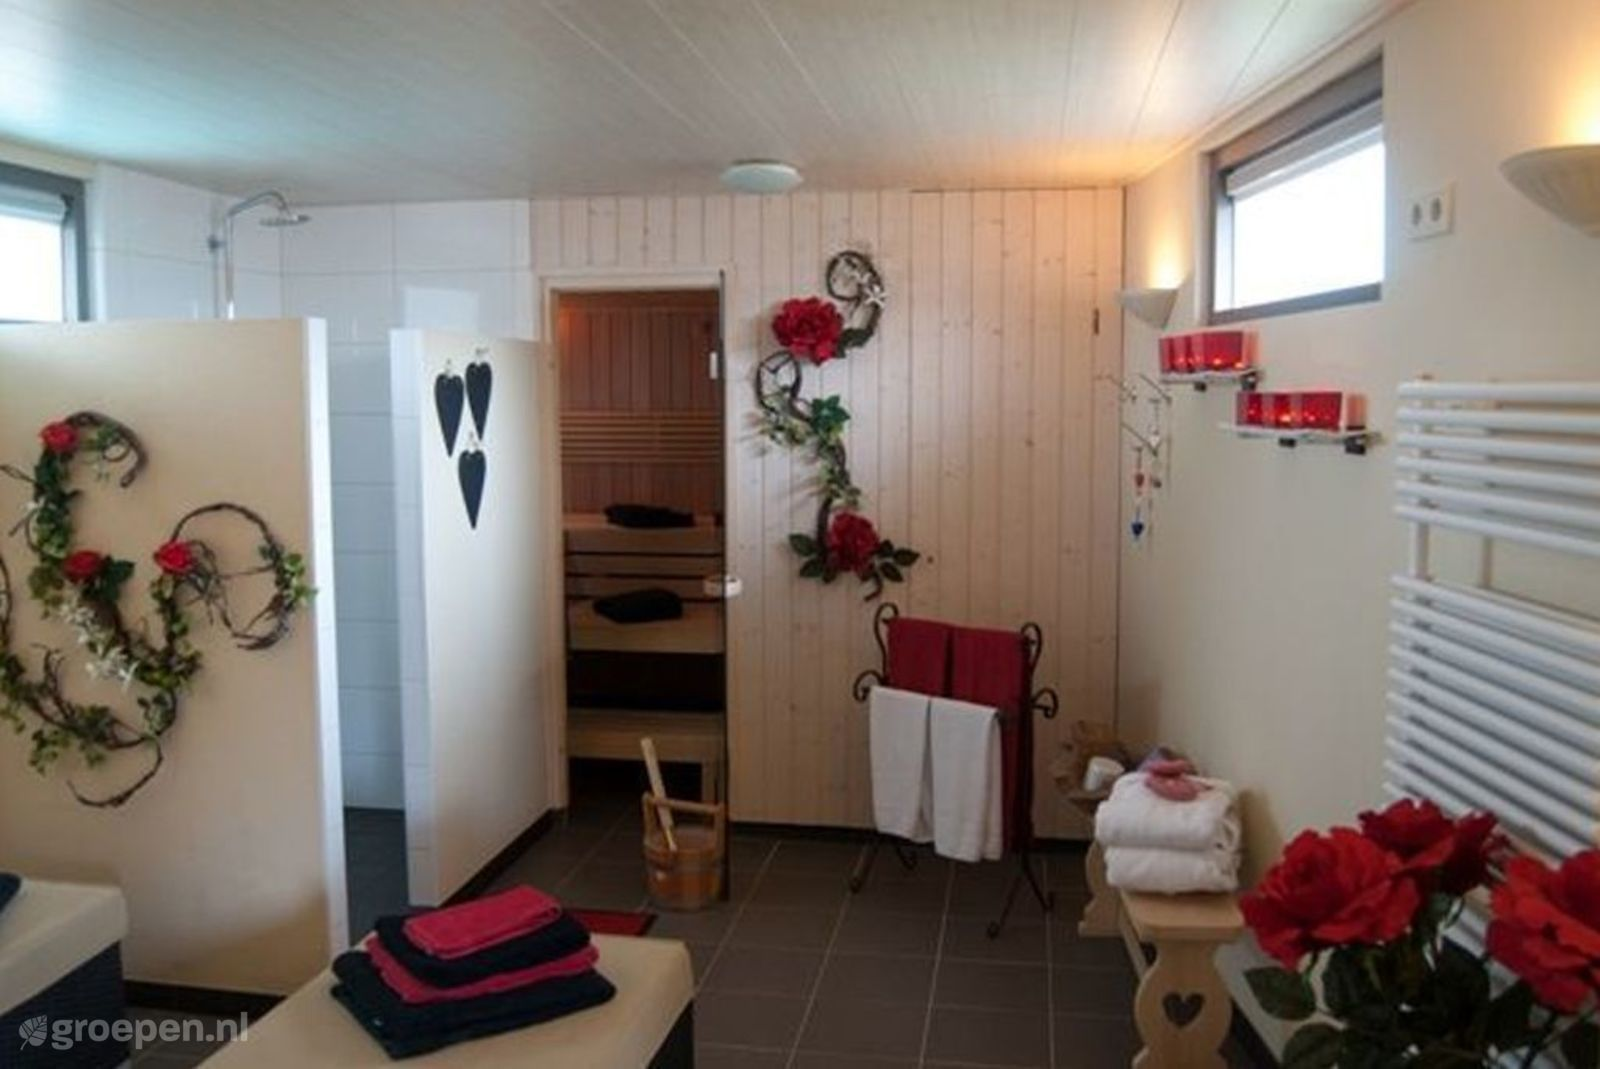 Group accommodation Wanroij